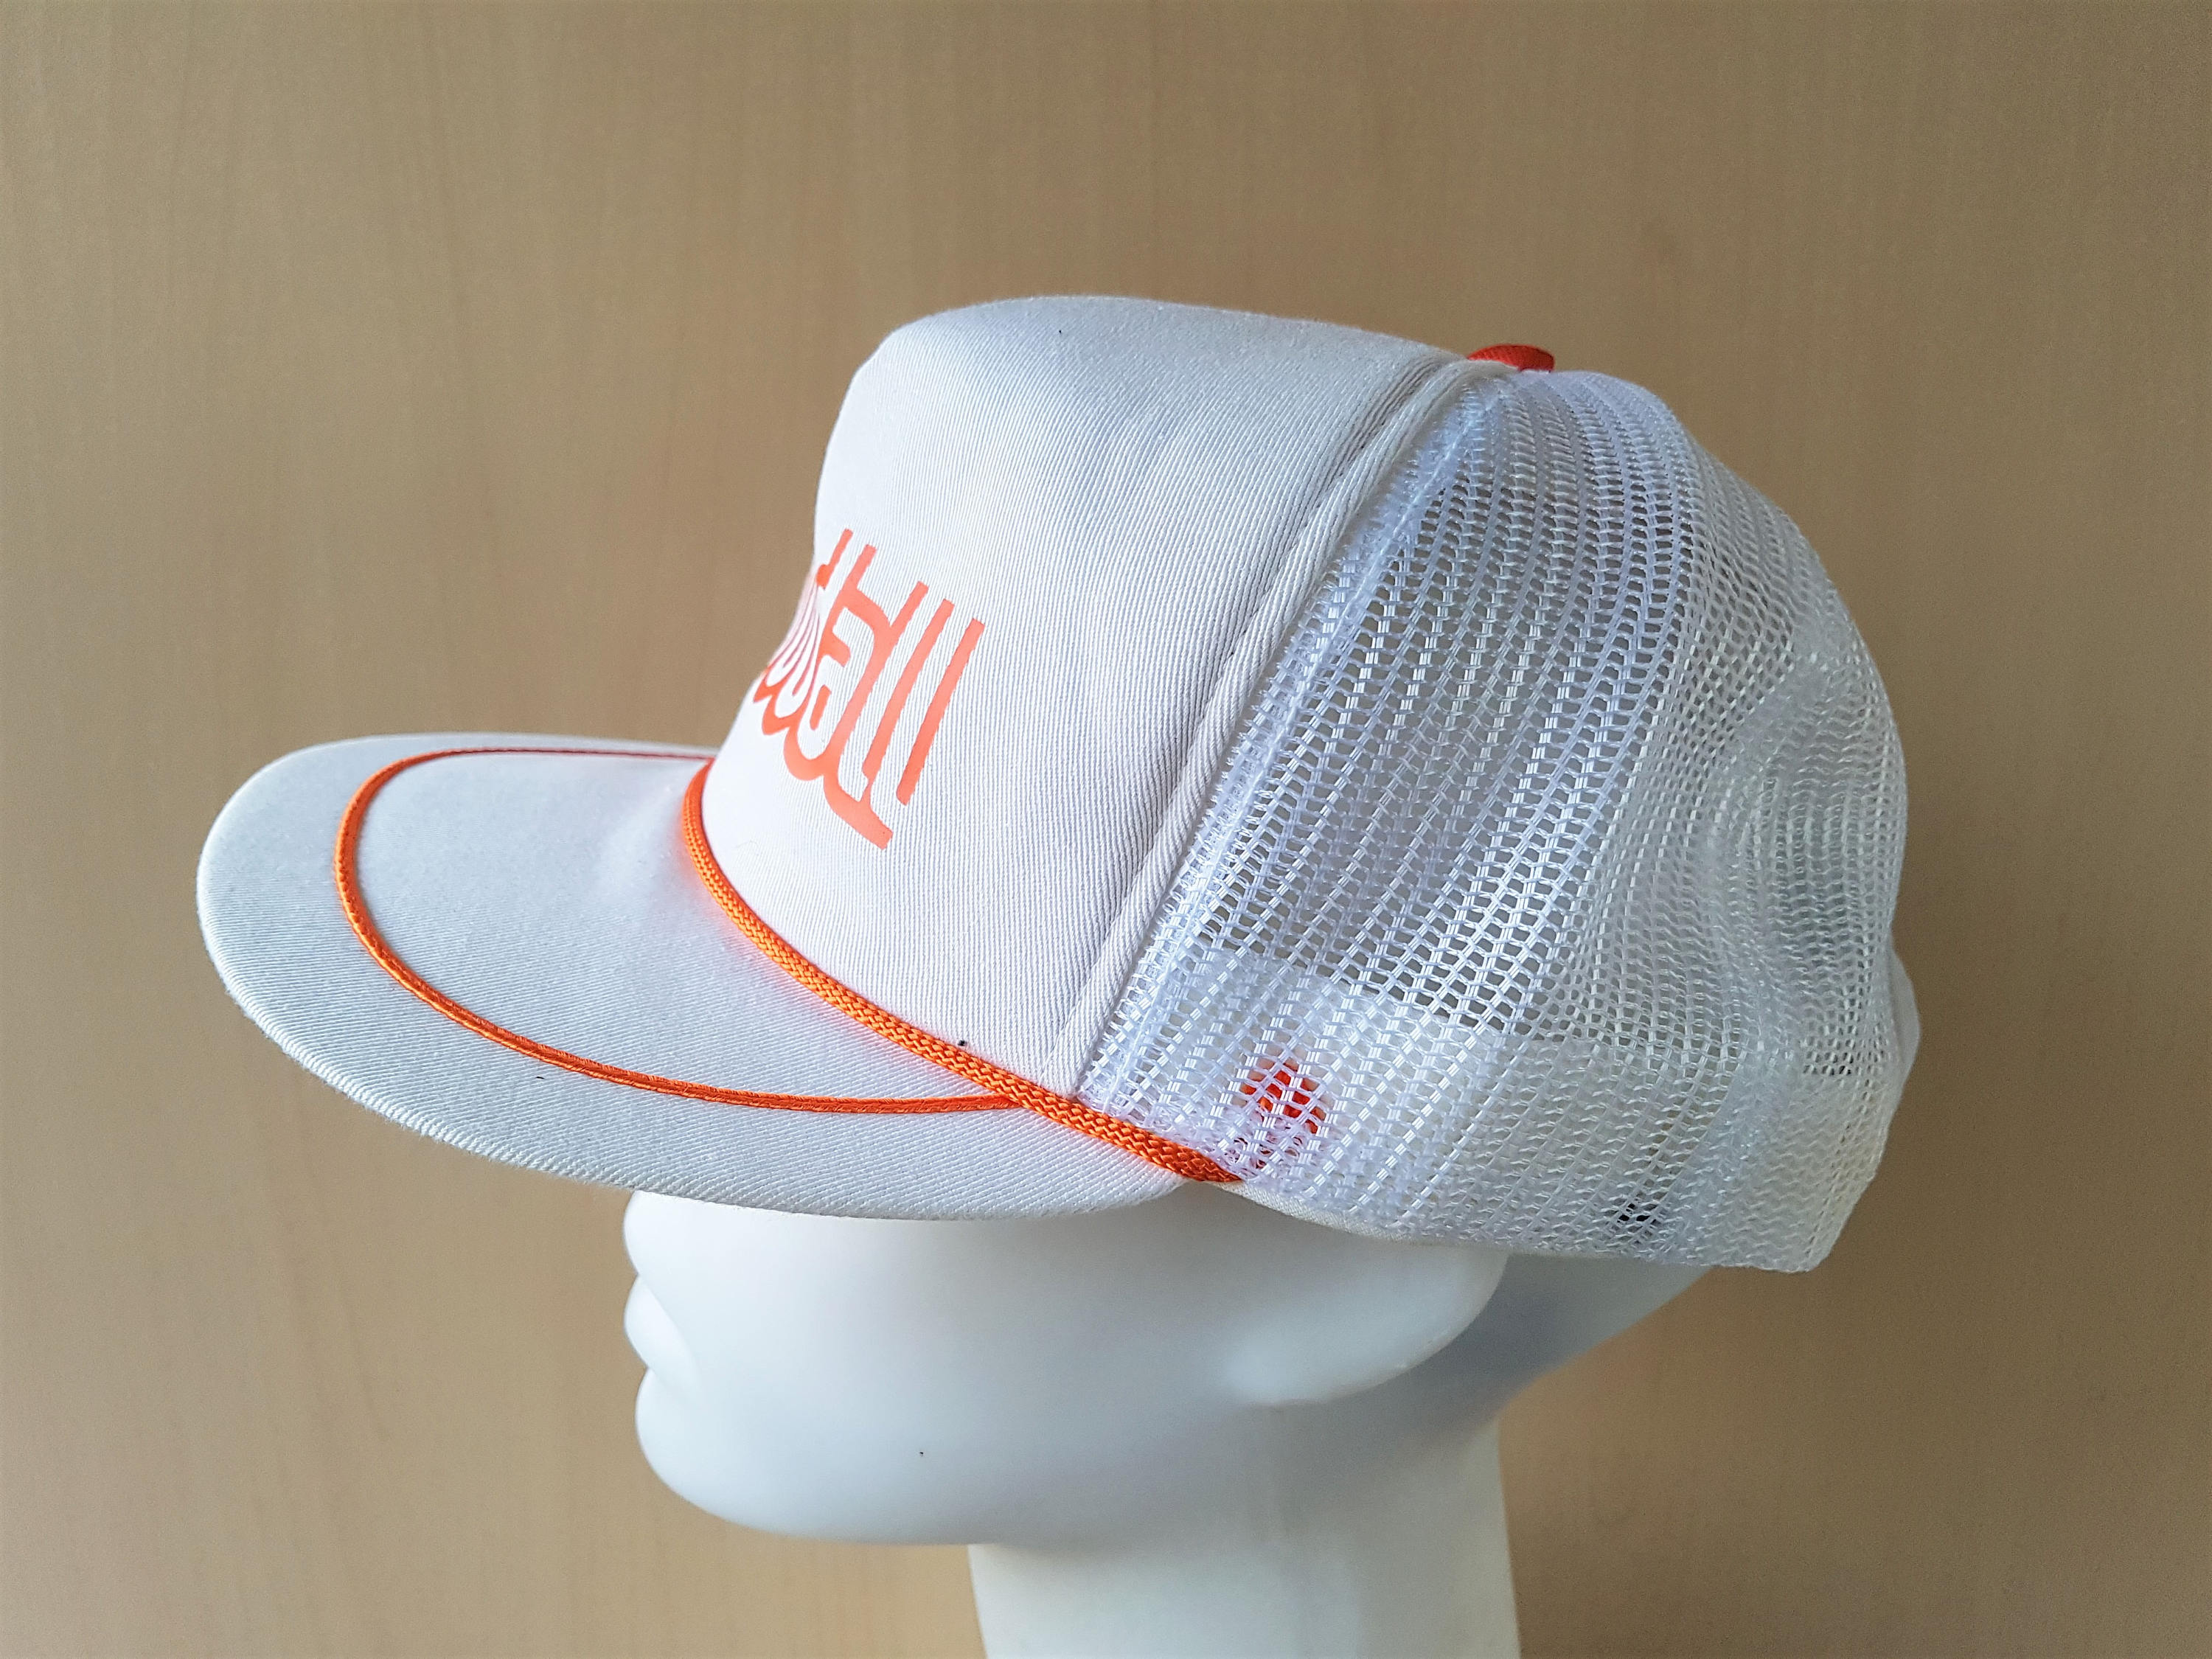 GOODALL Rubber Hoses Vintage 80s Trucker Hat White Mesh Orange Rope ...